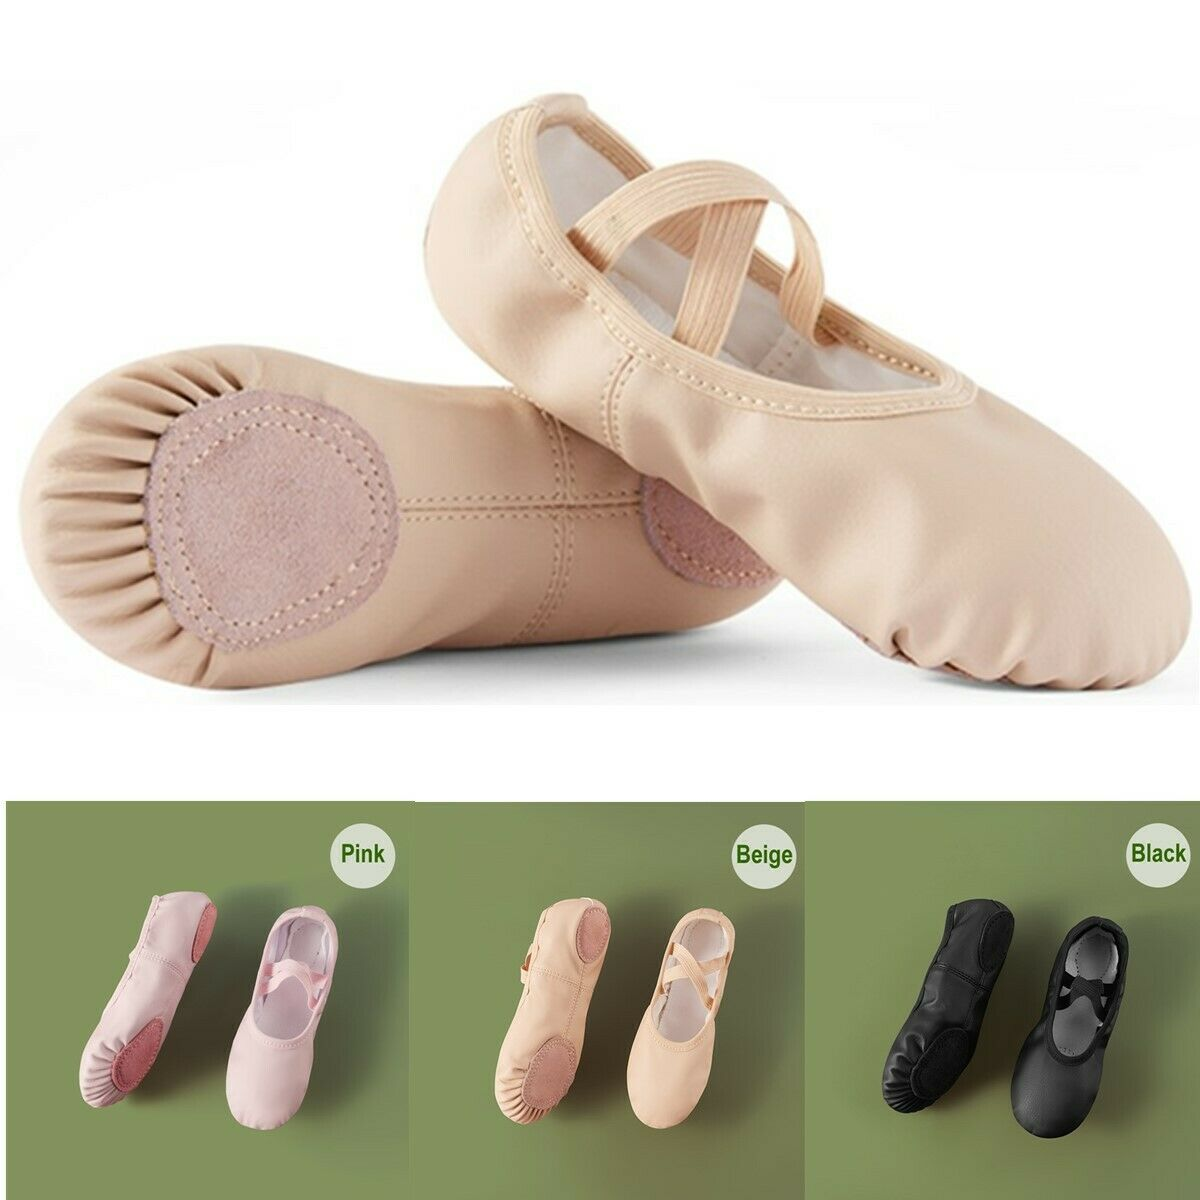 Children Kids Adult PU Leather Soft Dance Yoga Shoes Ballet Slippers Shoes New